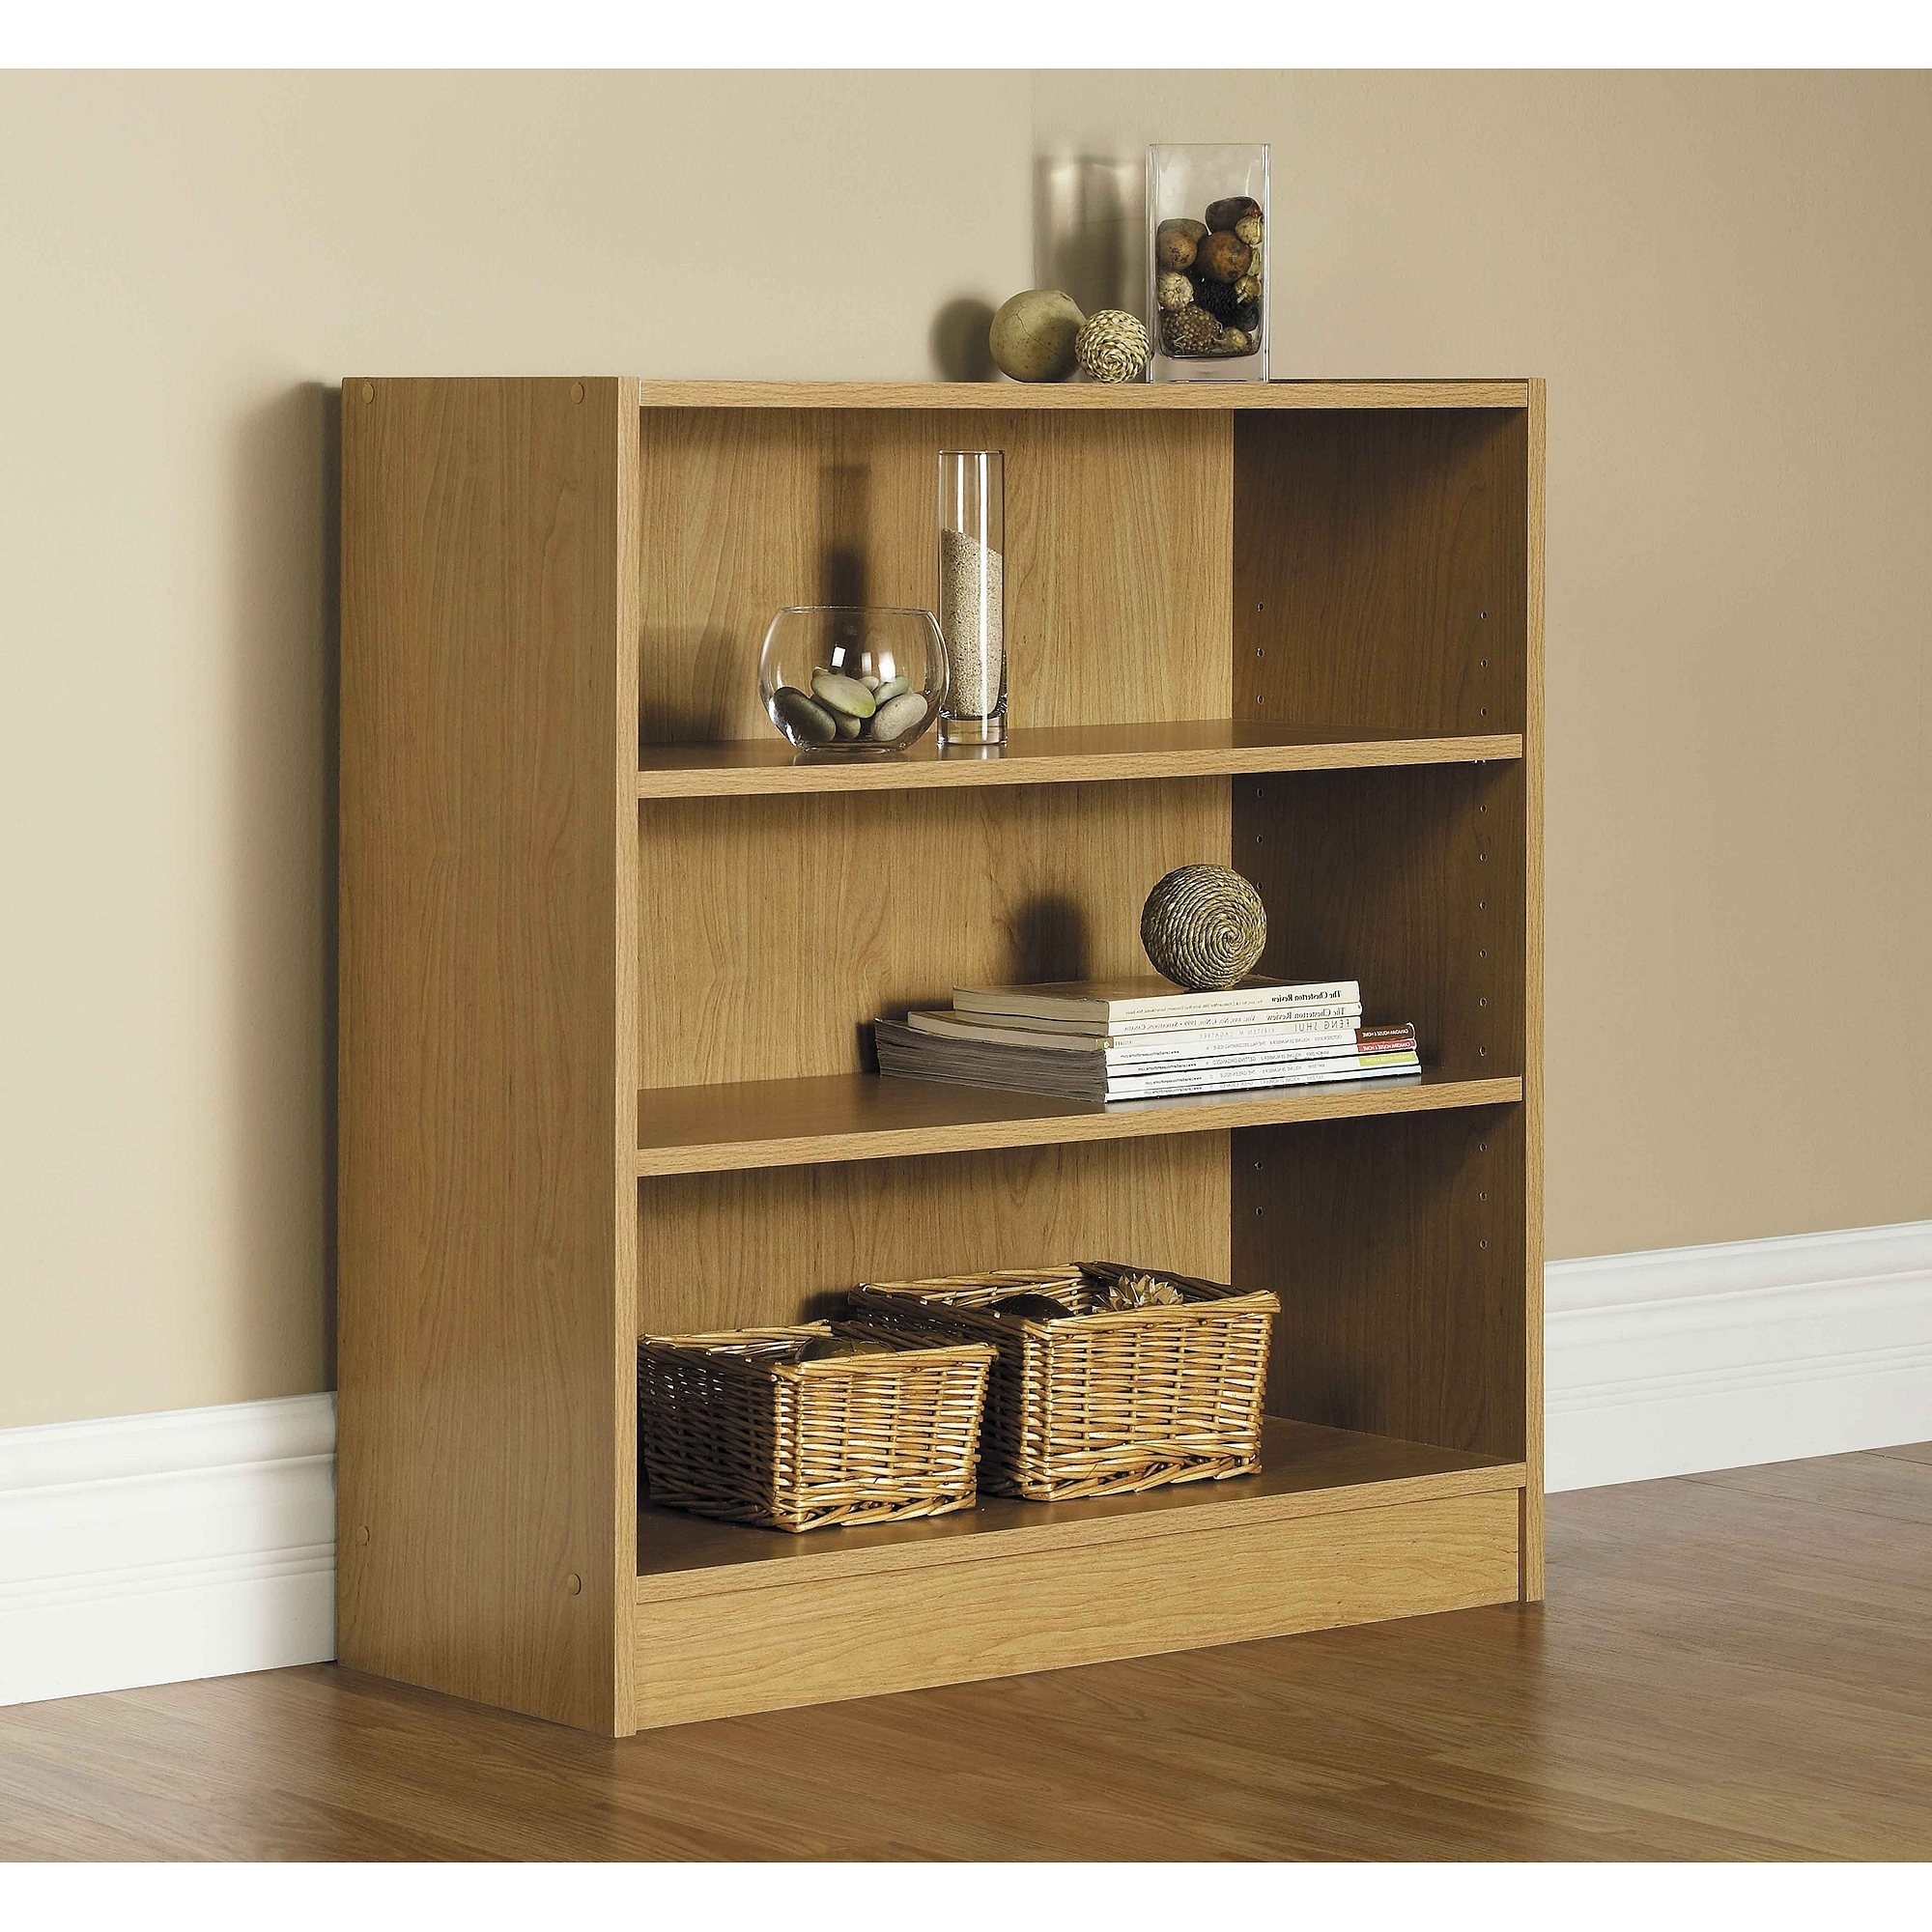 Mainstays Wide 3 Shelf Bookcase, Set Of 2, (Mix And Match For Preferred 3 Shelf Bookcases Walmart (View 7 of 15)